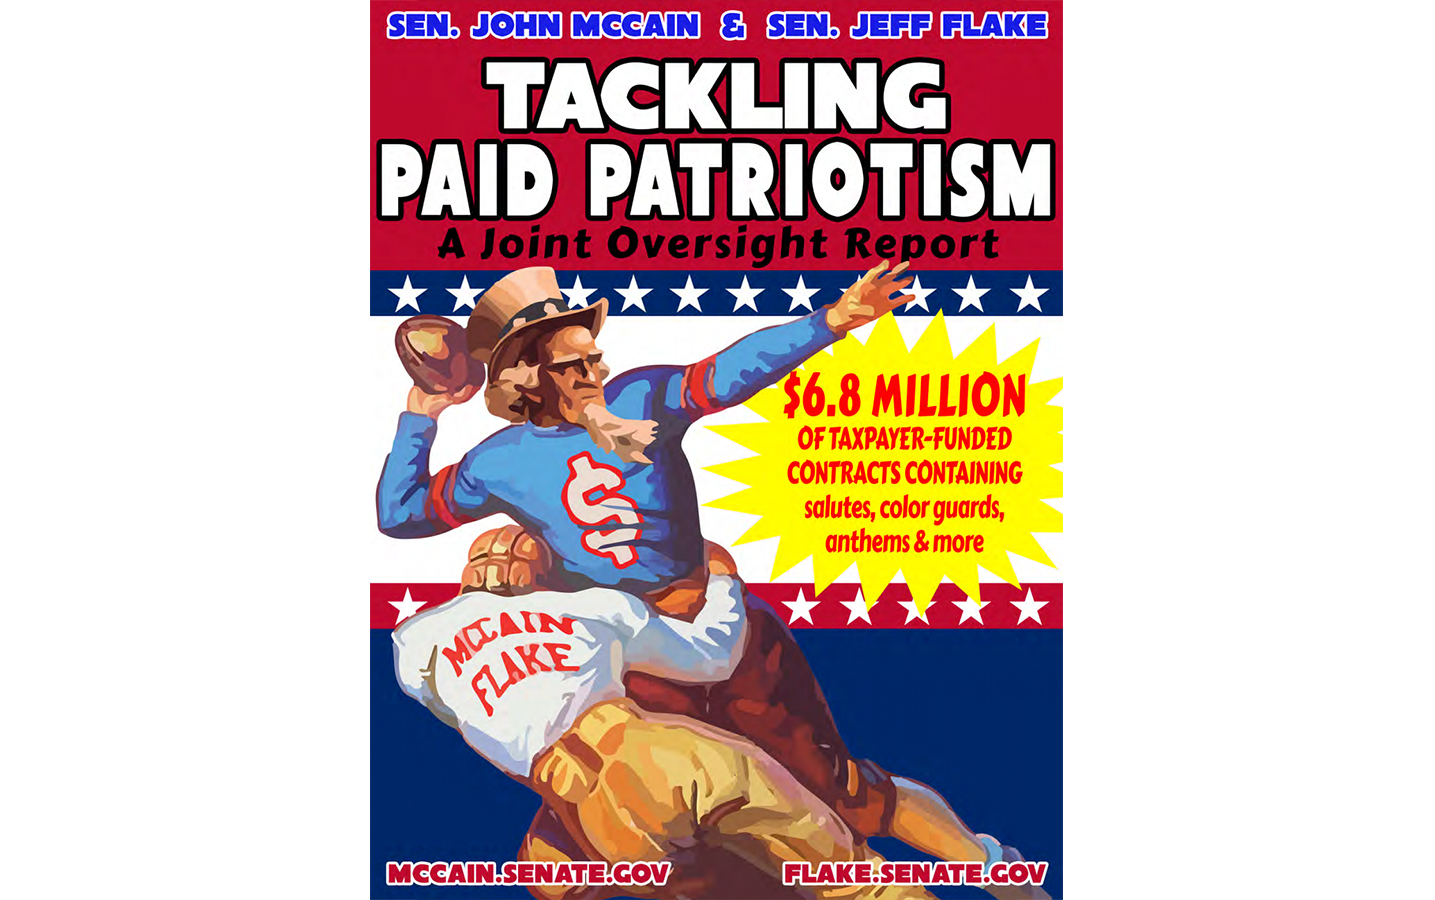 Senators McCain and Flake's 2015 report on paid patriotism at sporting events included college teams. (Courtesy www.mccain.senate.gov)